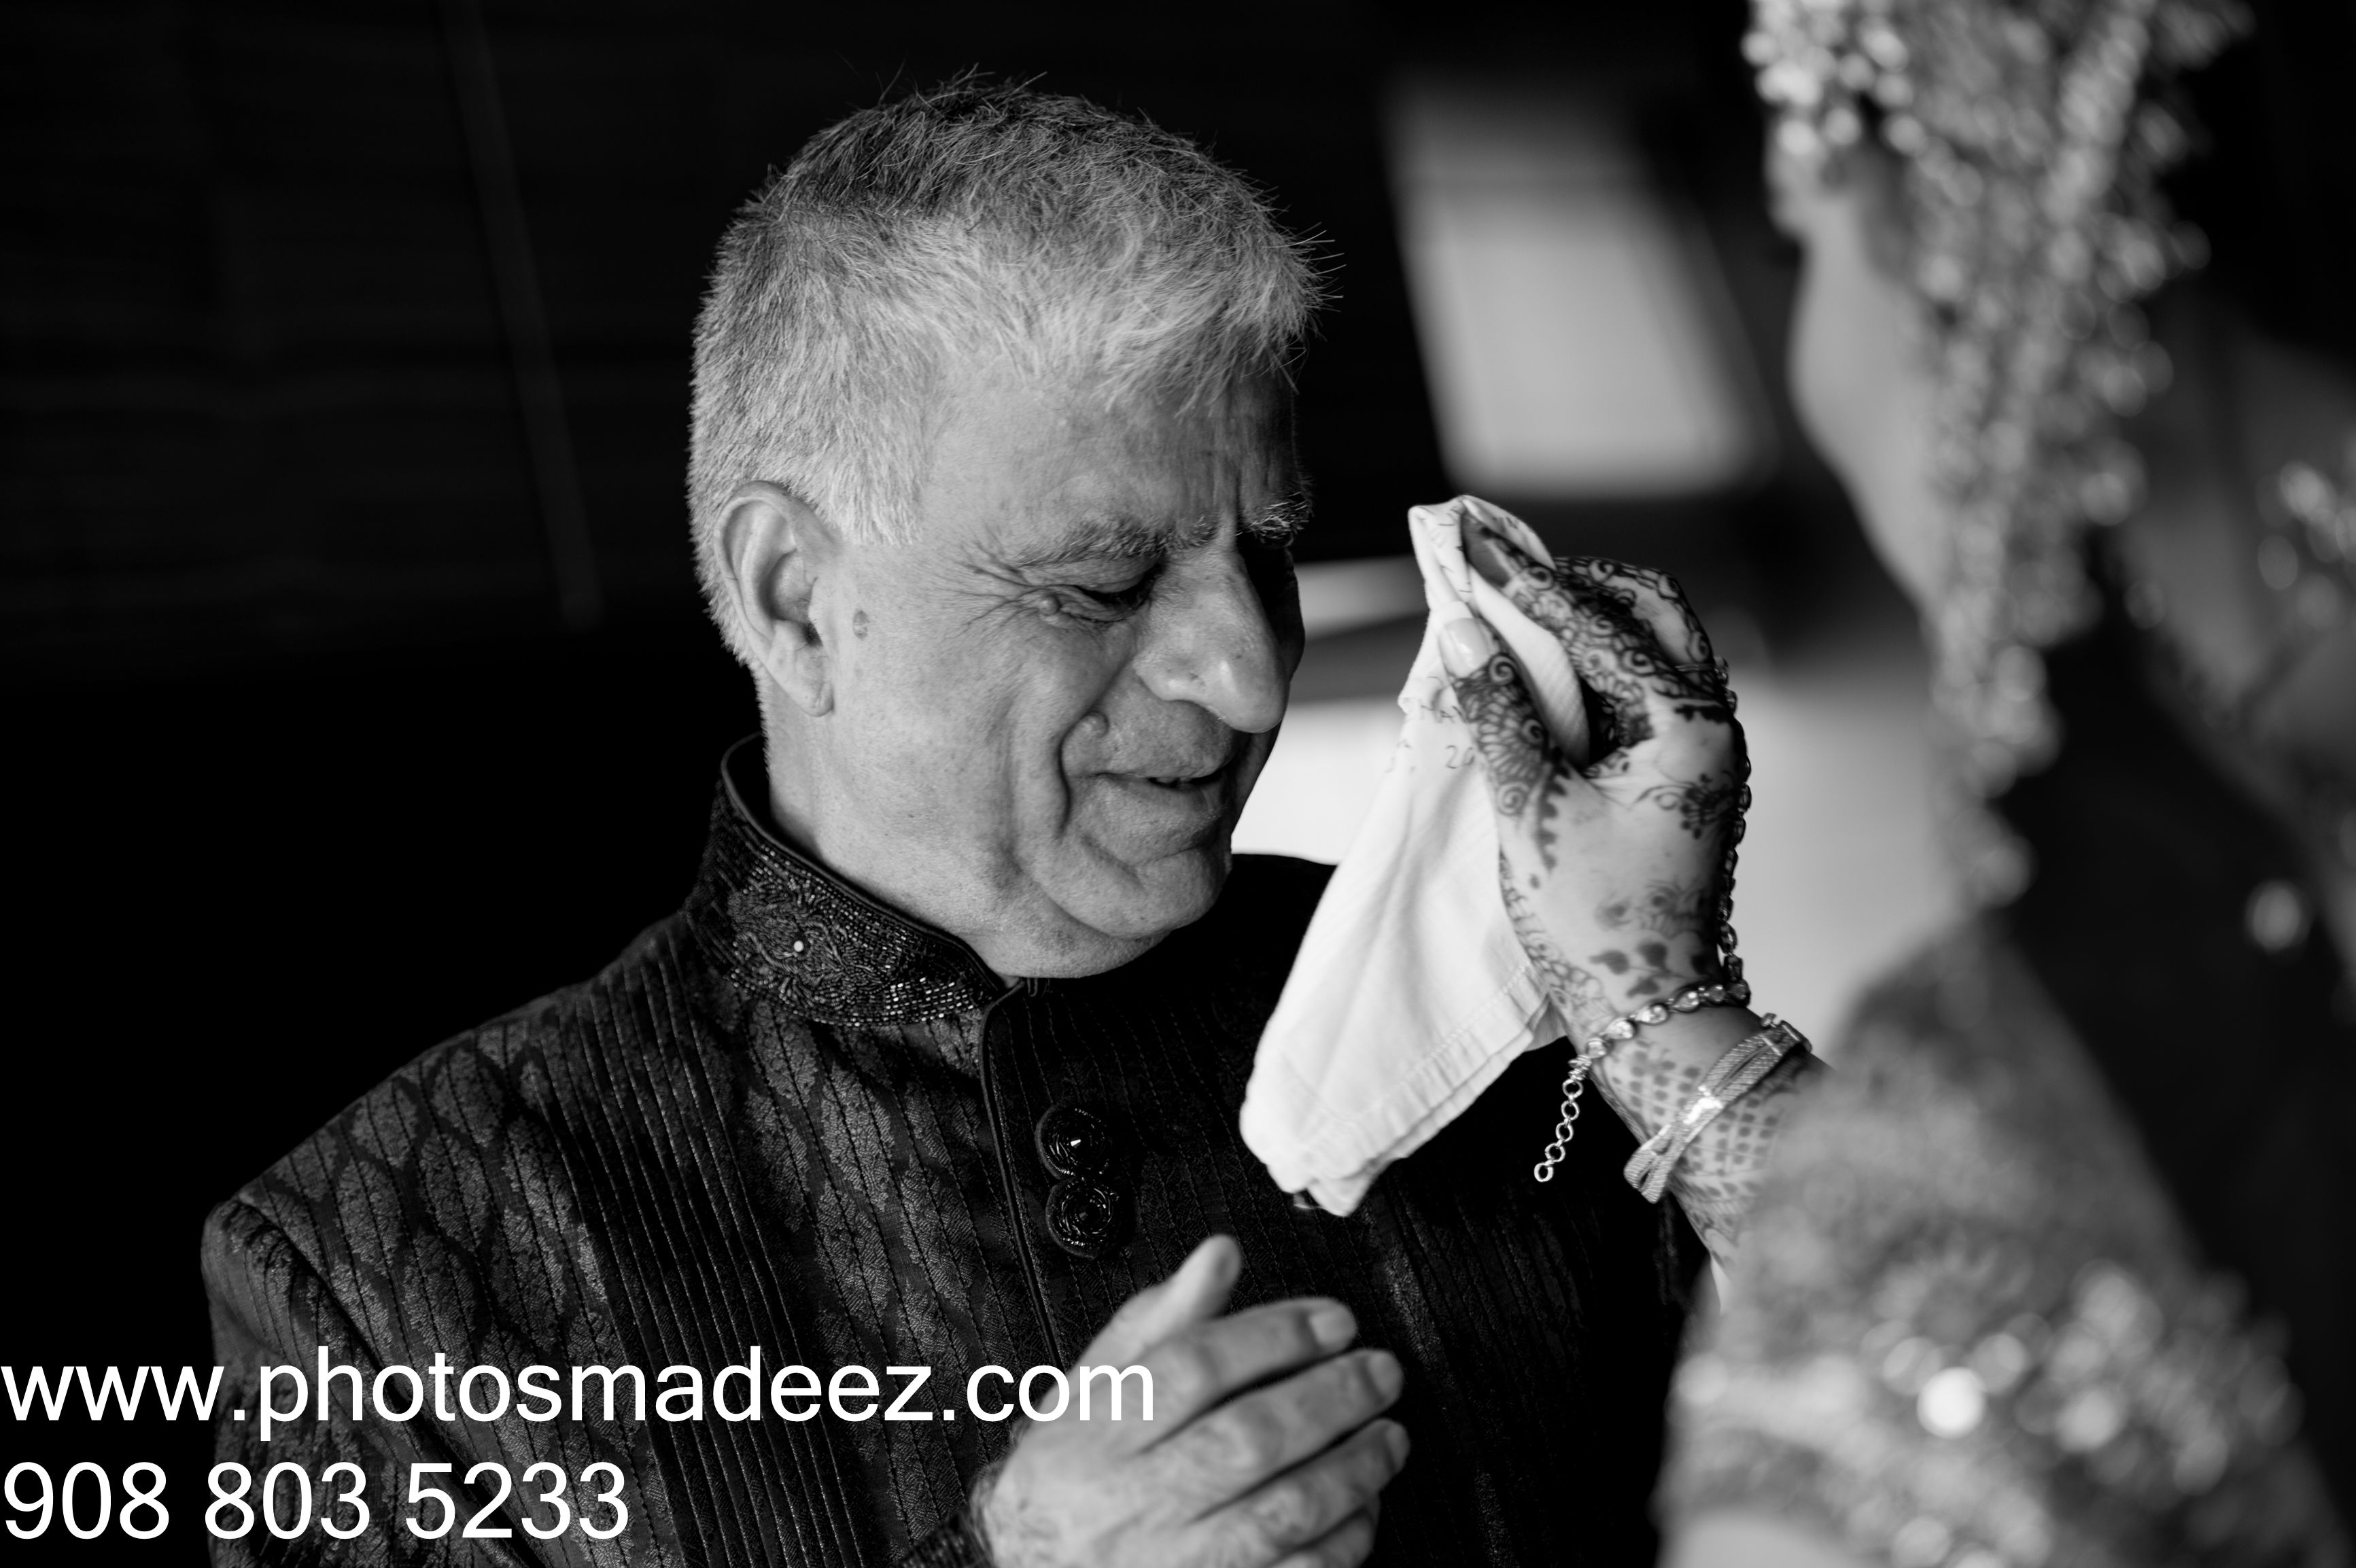 Father - Daughter emotional moment in Indian Wedding in Hyatt Jersey City, NJ with SV Bridal Concepts, Sanjana Vaswani, Best Wedding Photographer PhotosMadeEz, Award winning photographer Mou Mukherjee. Punjabi wedding, Punjabi Bride,  Candid moment... photo journalism. #subinandmehak